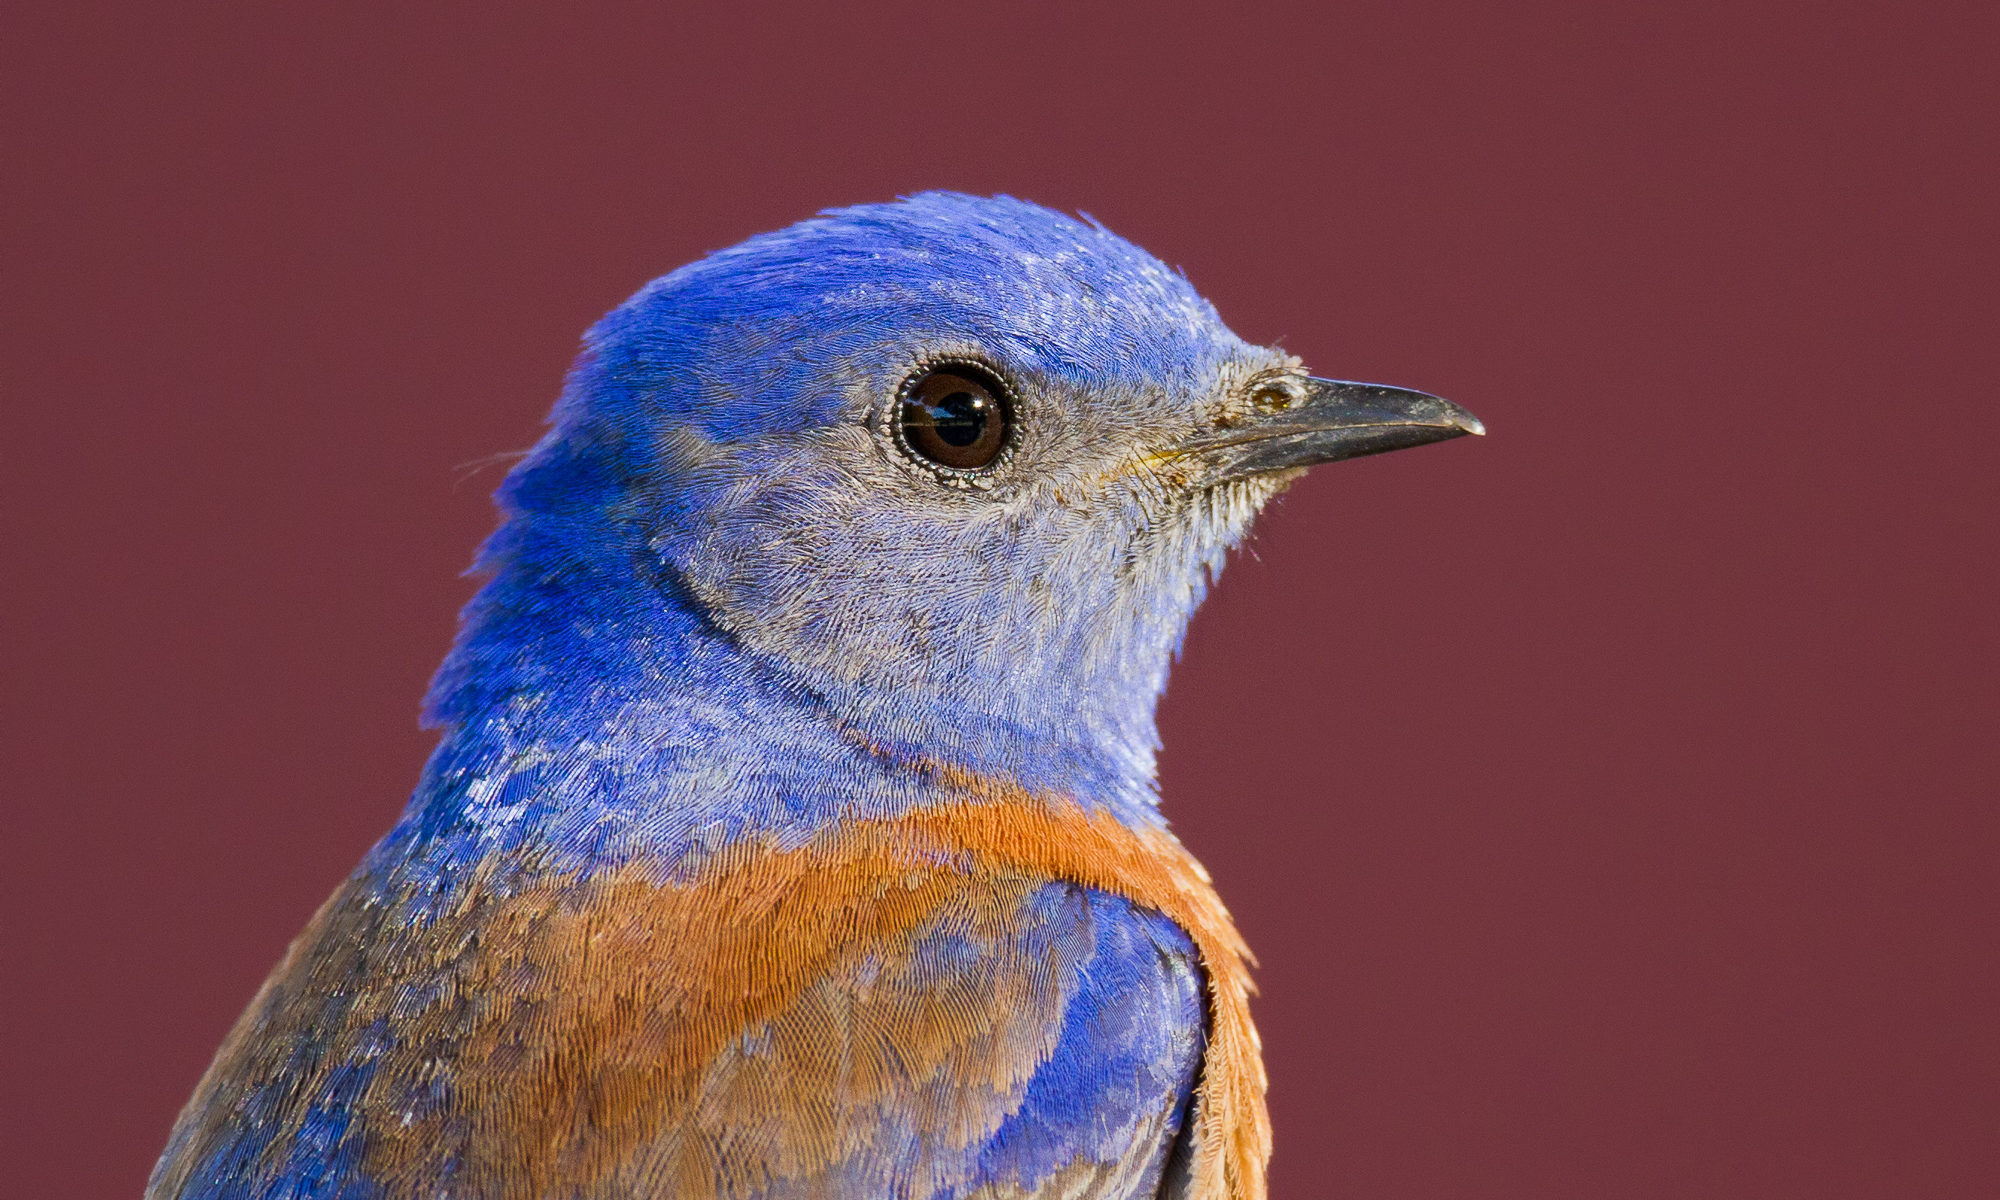 A western bluebird perches in front of a red barn